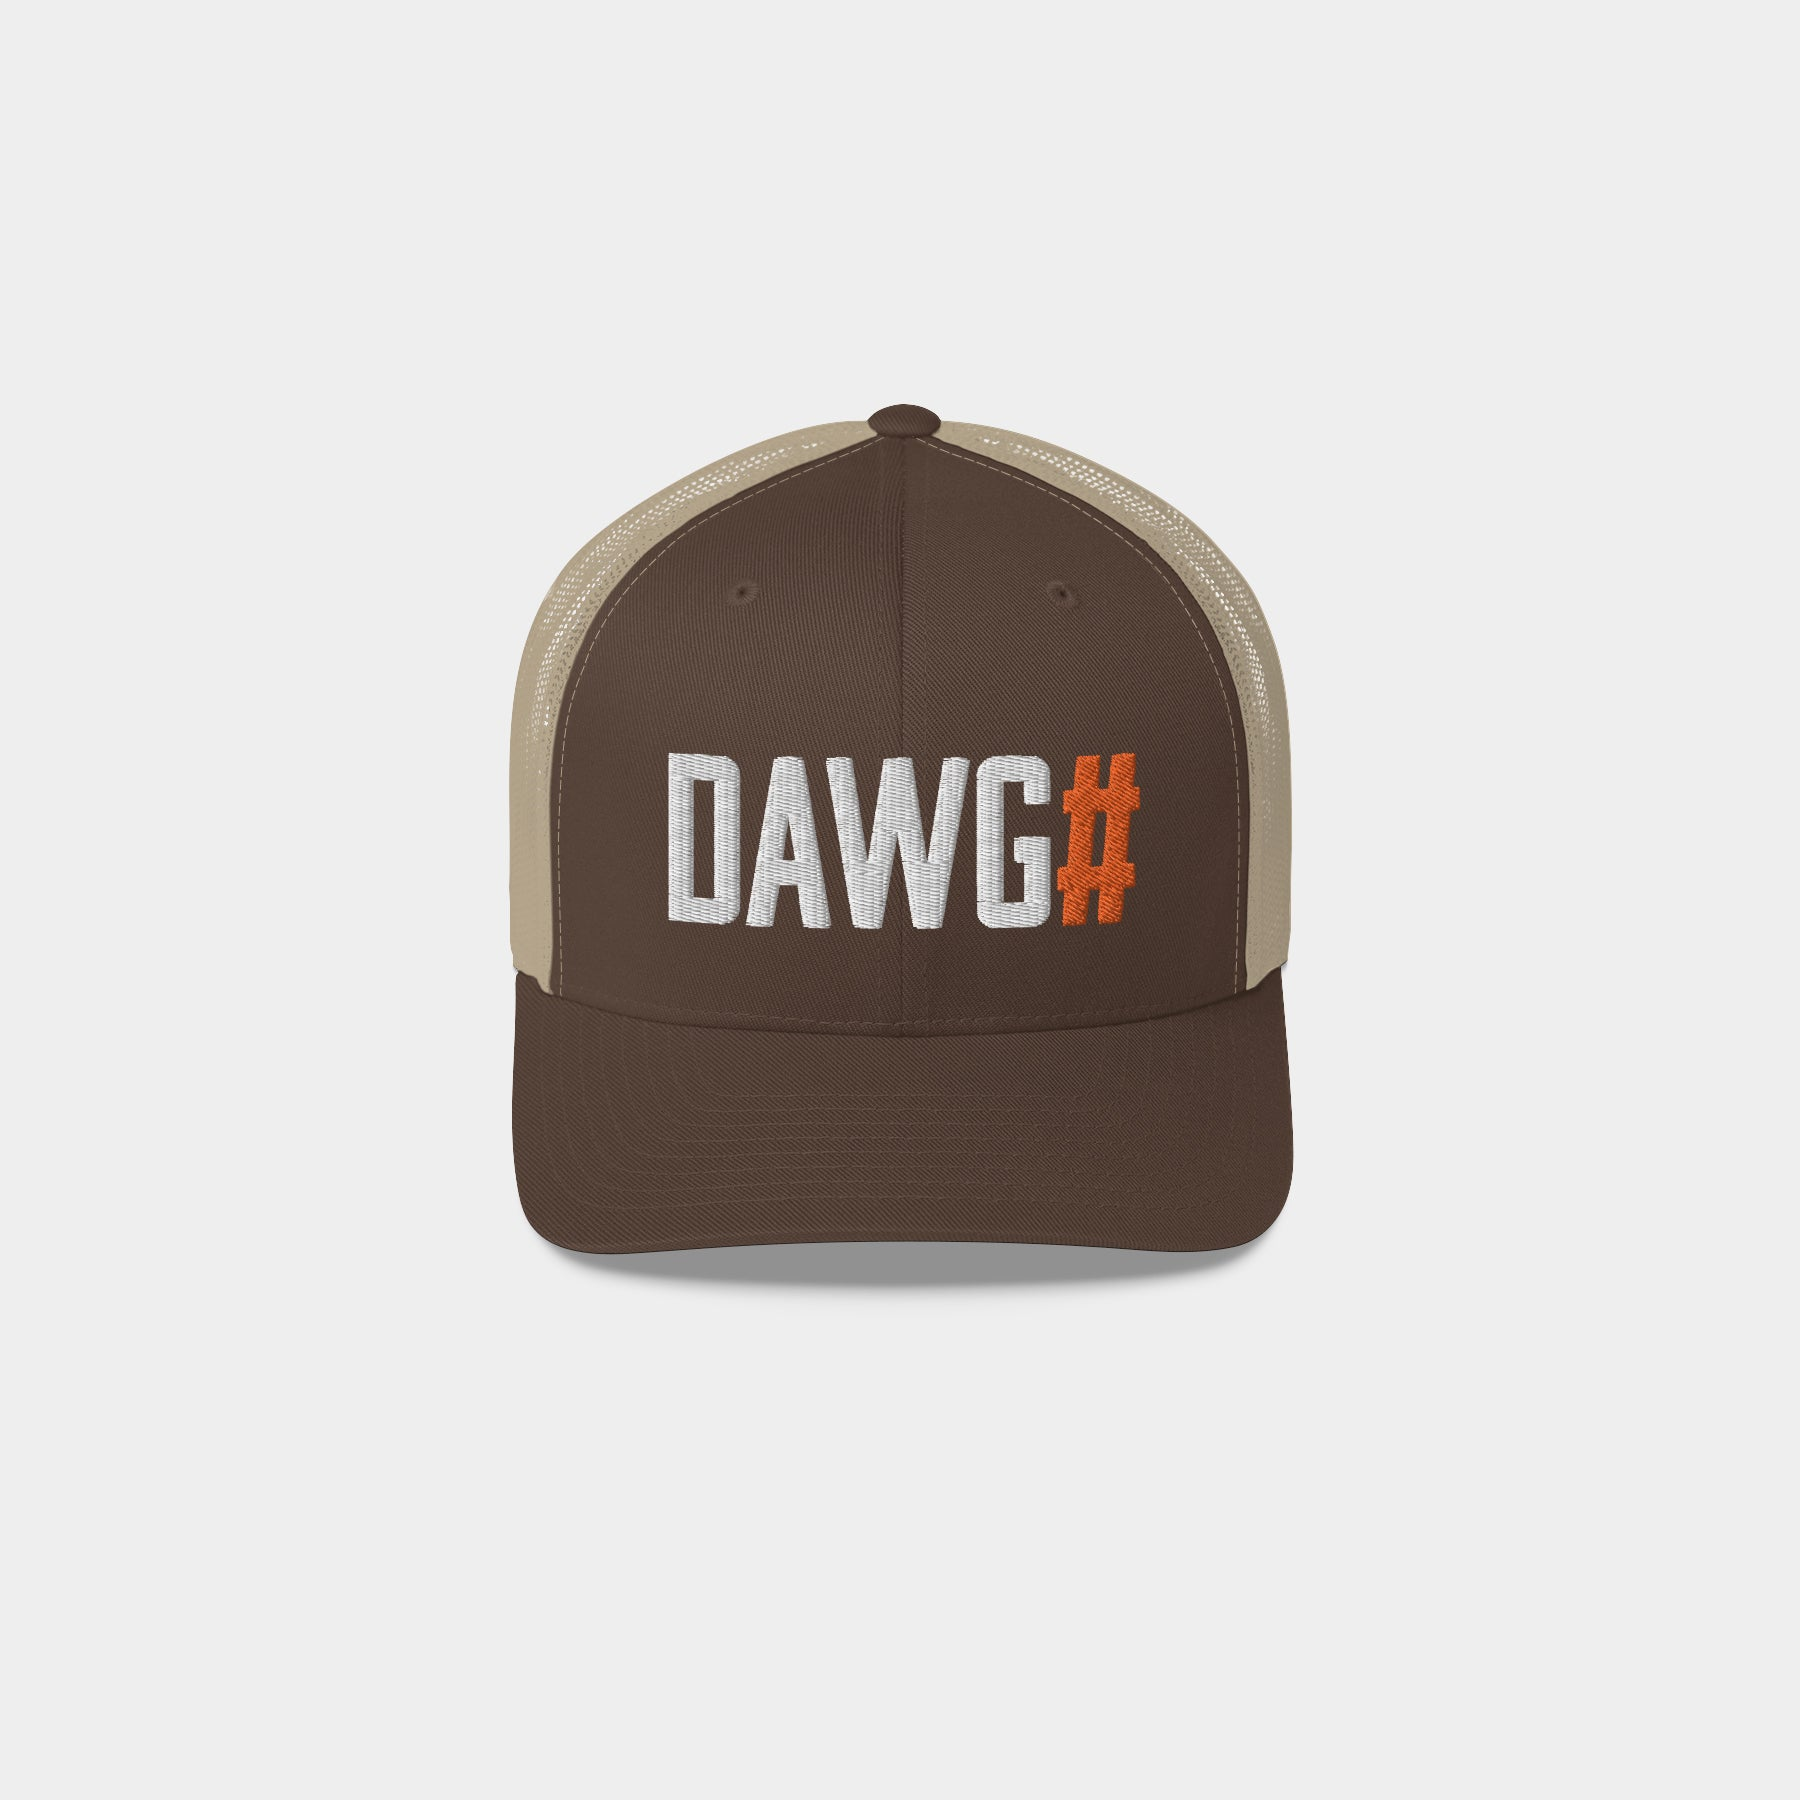 DAWG# Retro Trucker Hat, Brown